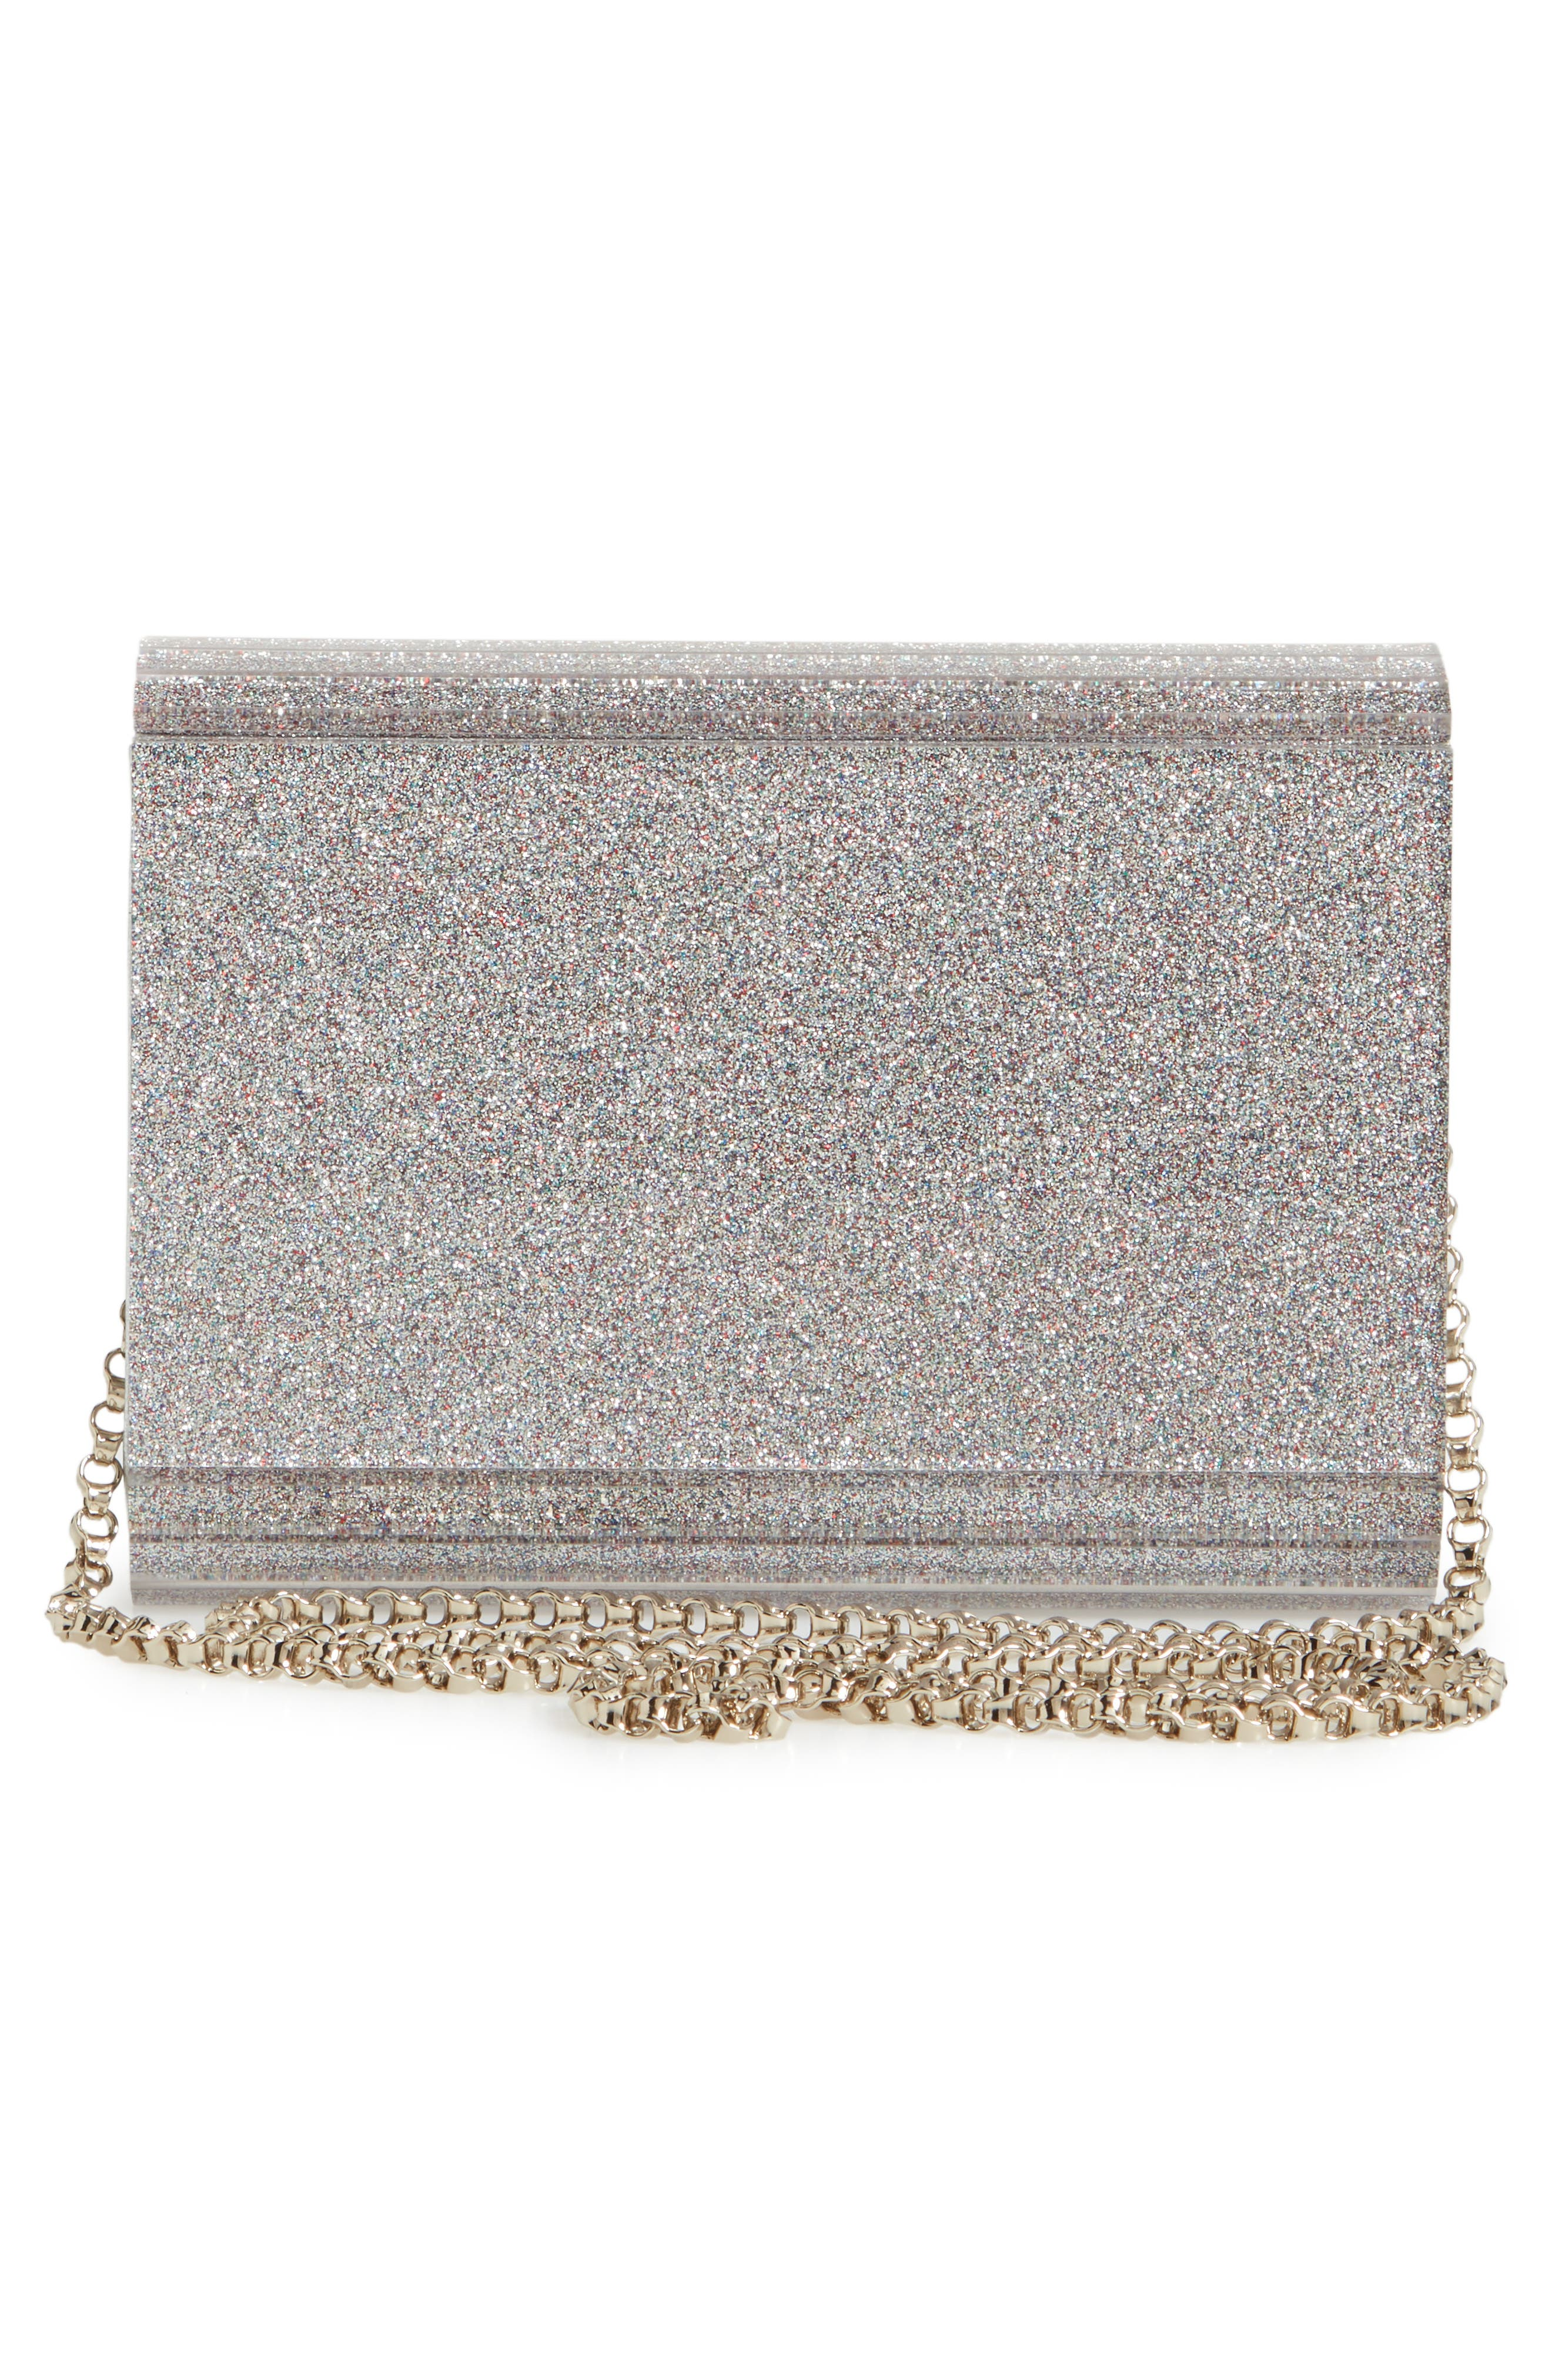 JIMMY CHOO, Candy Glitter Clutch, Alternate thumbnail 3, color, 040